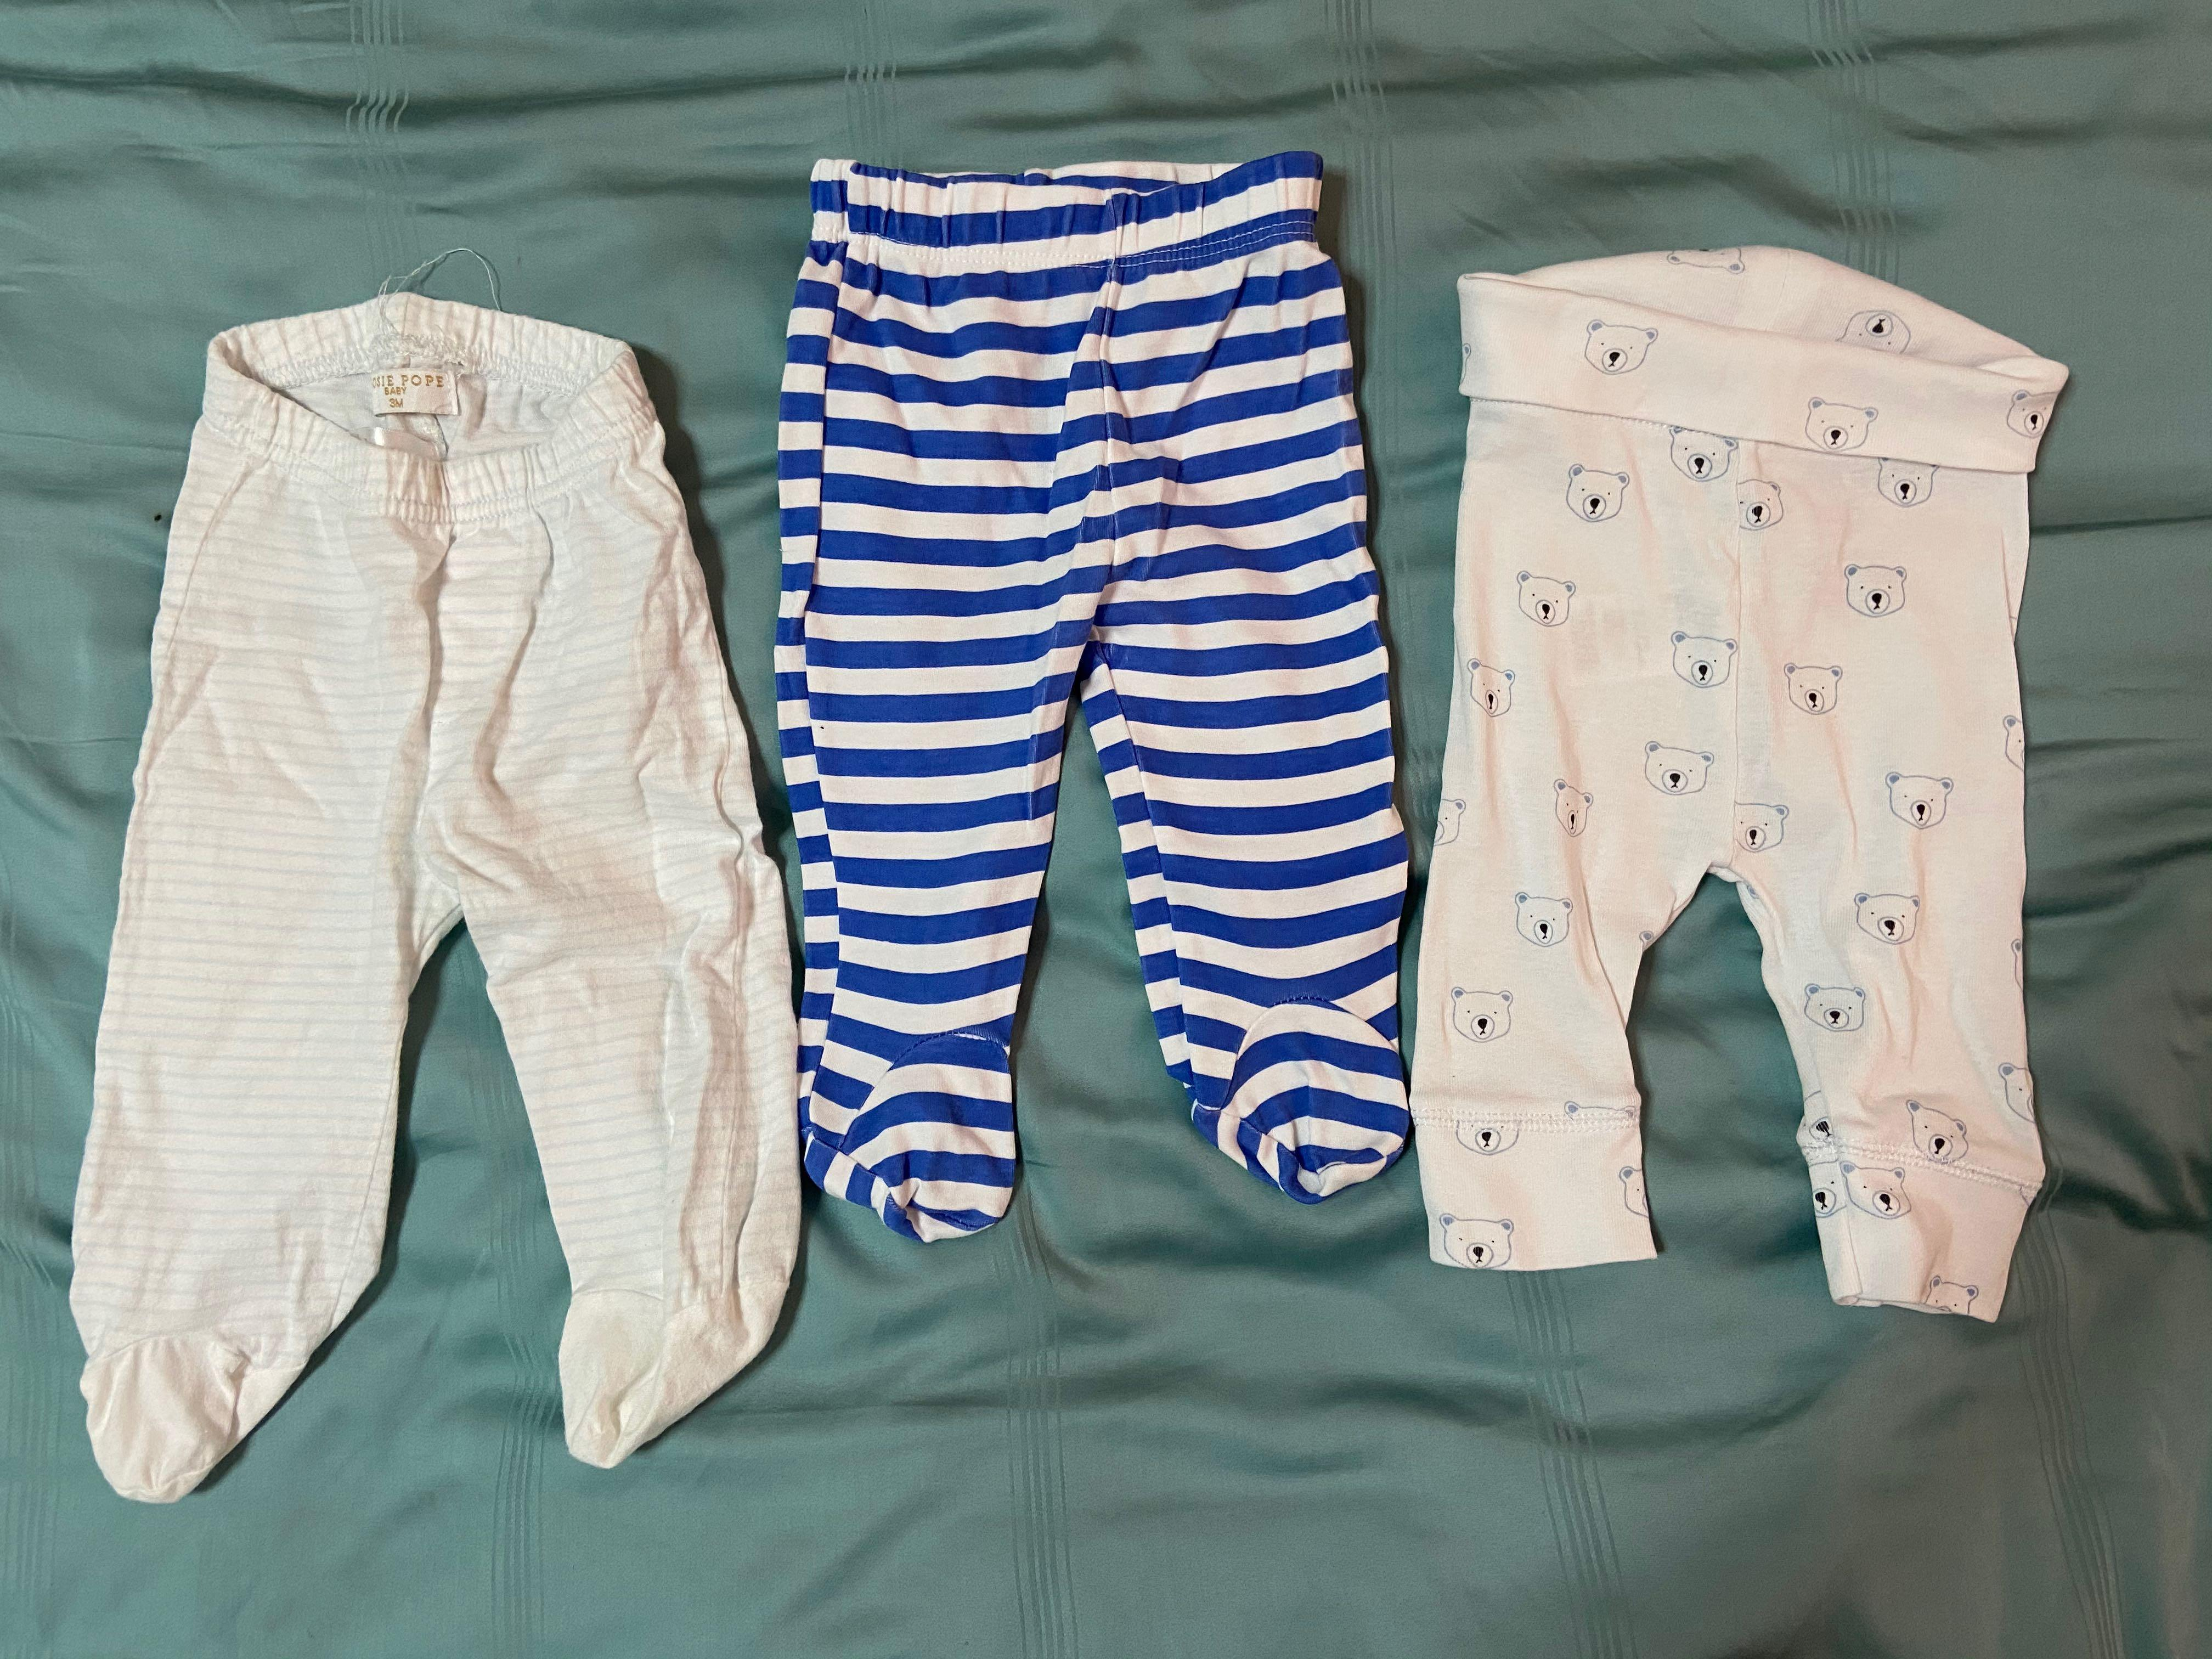 6 pairs Baby Clothes pants with feet cover, Babies & Kids, Babies